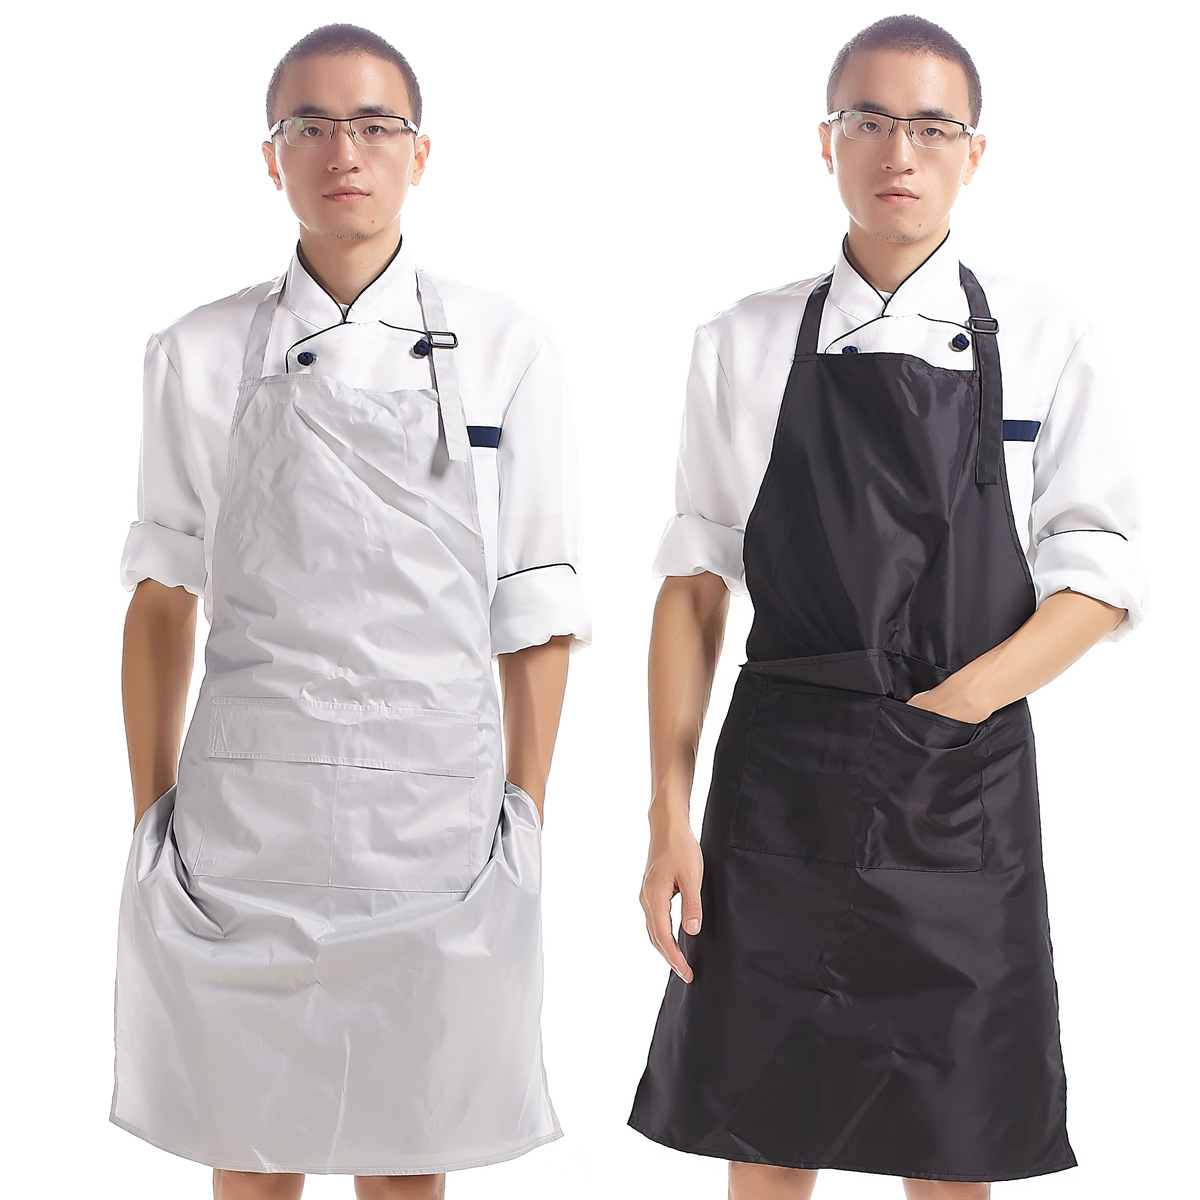 Hot sale PVC kitchen long section simple male apron anti-oil, waterproof adjustable halter male apron+Oversleeves Model 20020(China (Mainland))